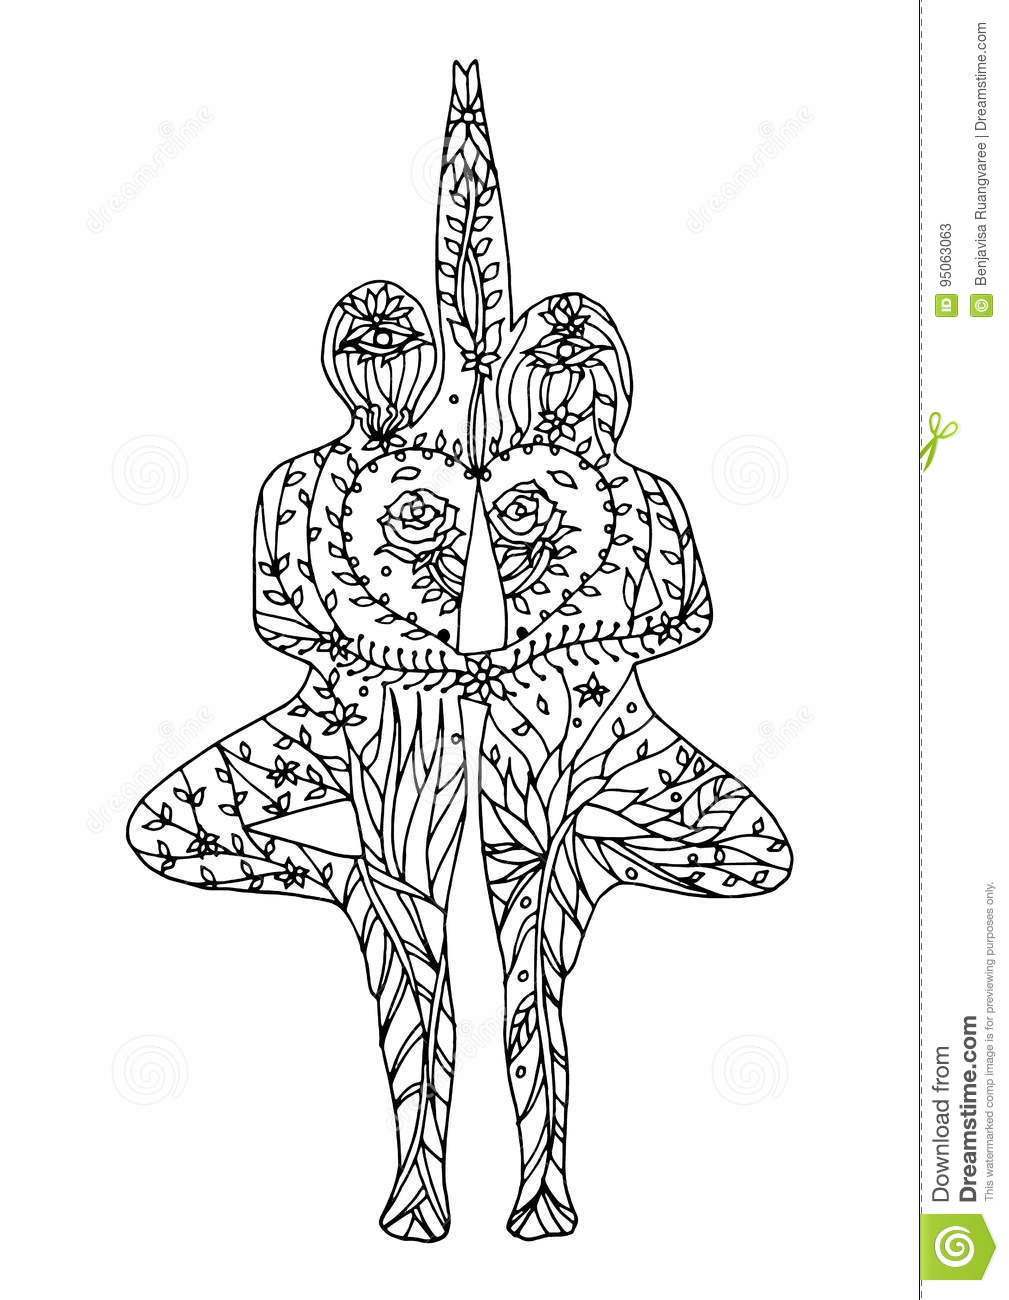 Couple tree pose yoga 7 chakra vector flower floral drawing hand drawn